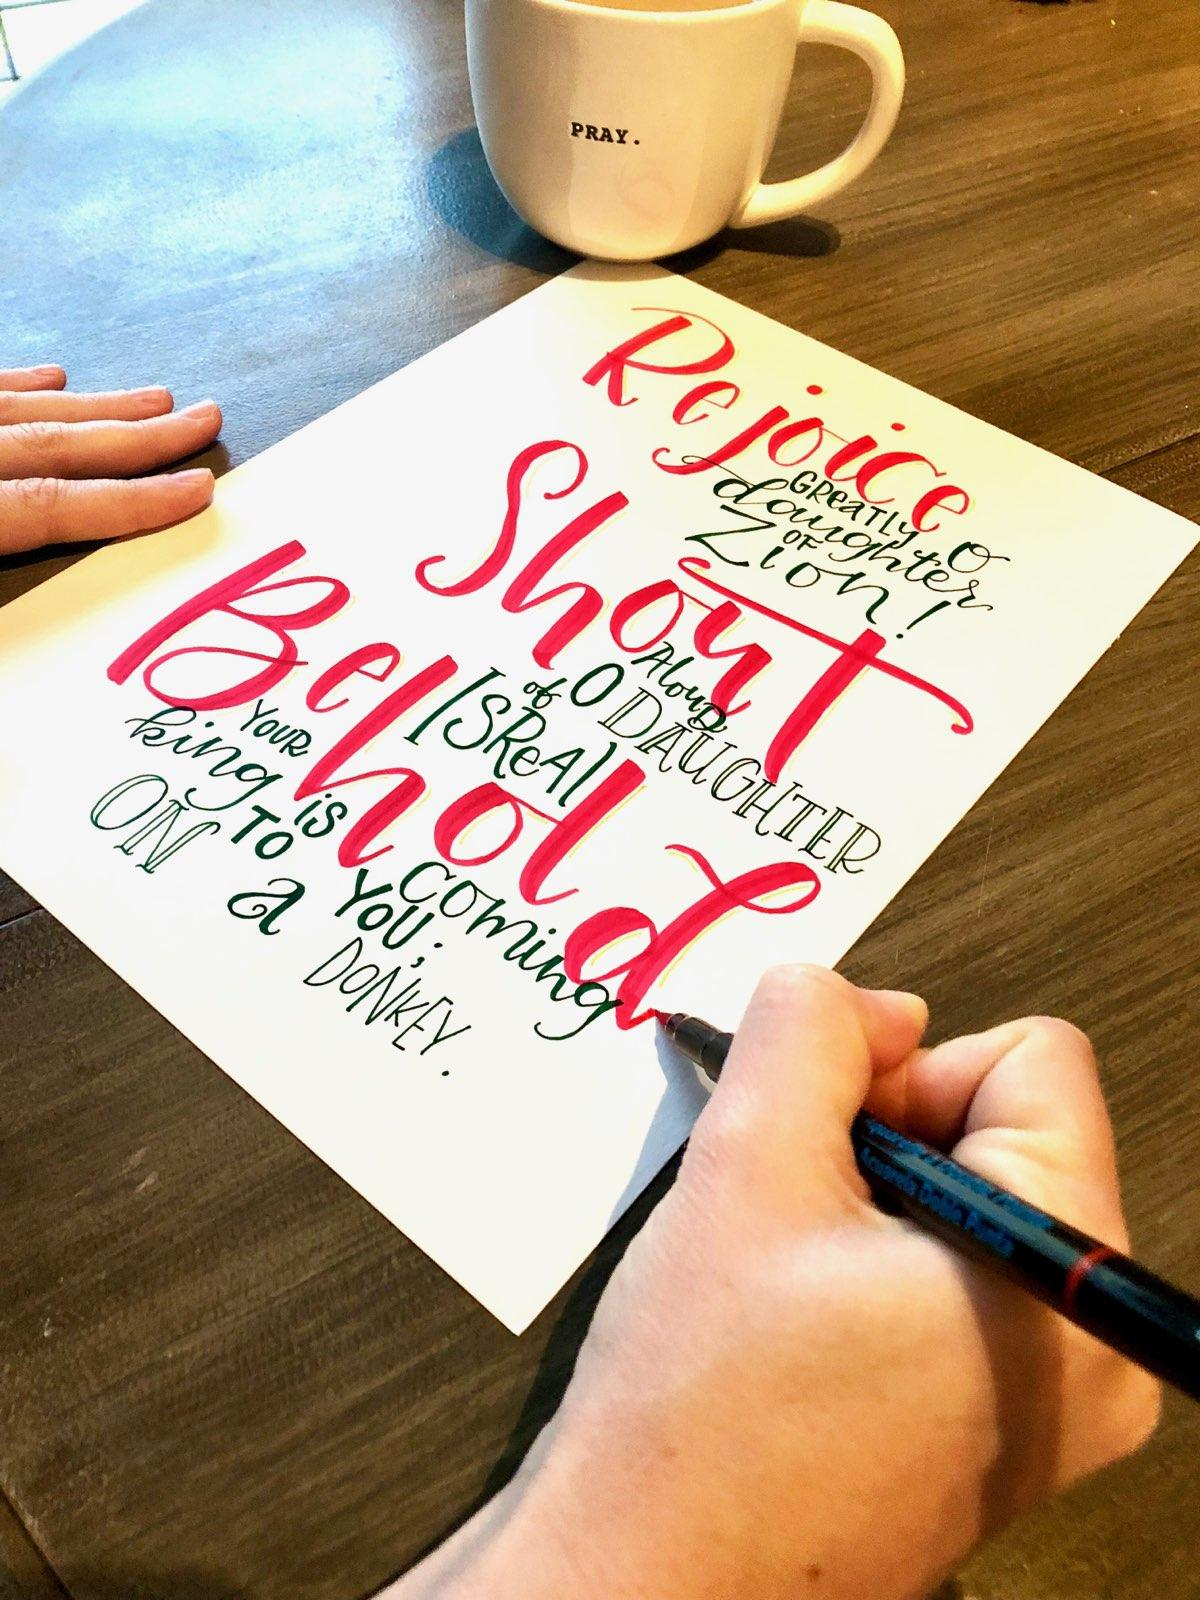 Follow  @jmcpeak  for her hand-lettering series on the Advent season.